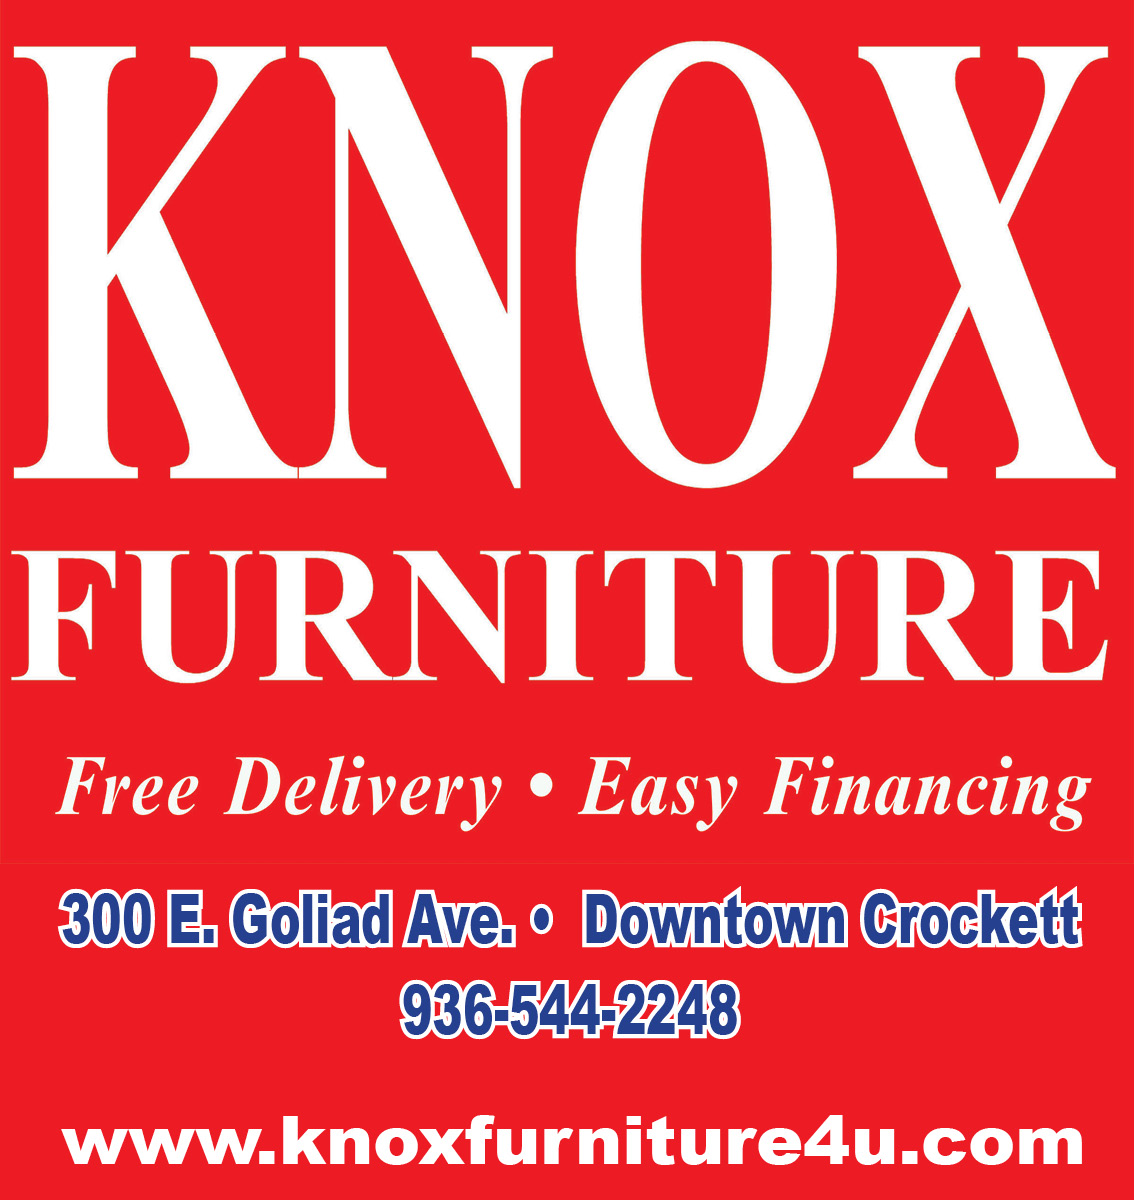 Knox-web-ad-new4.jpg